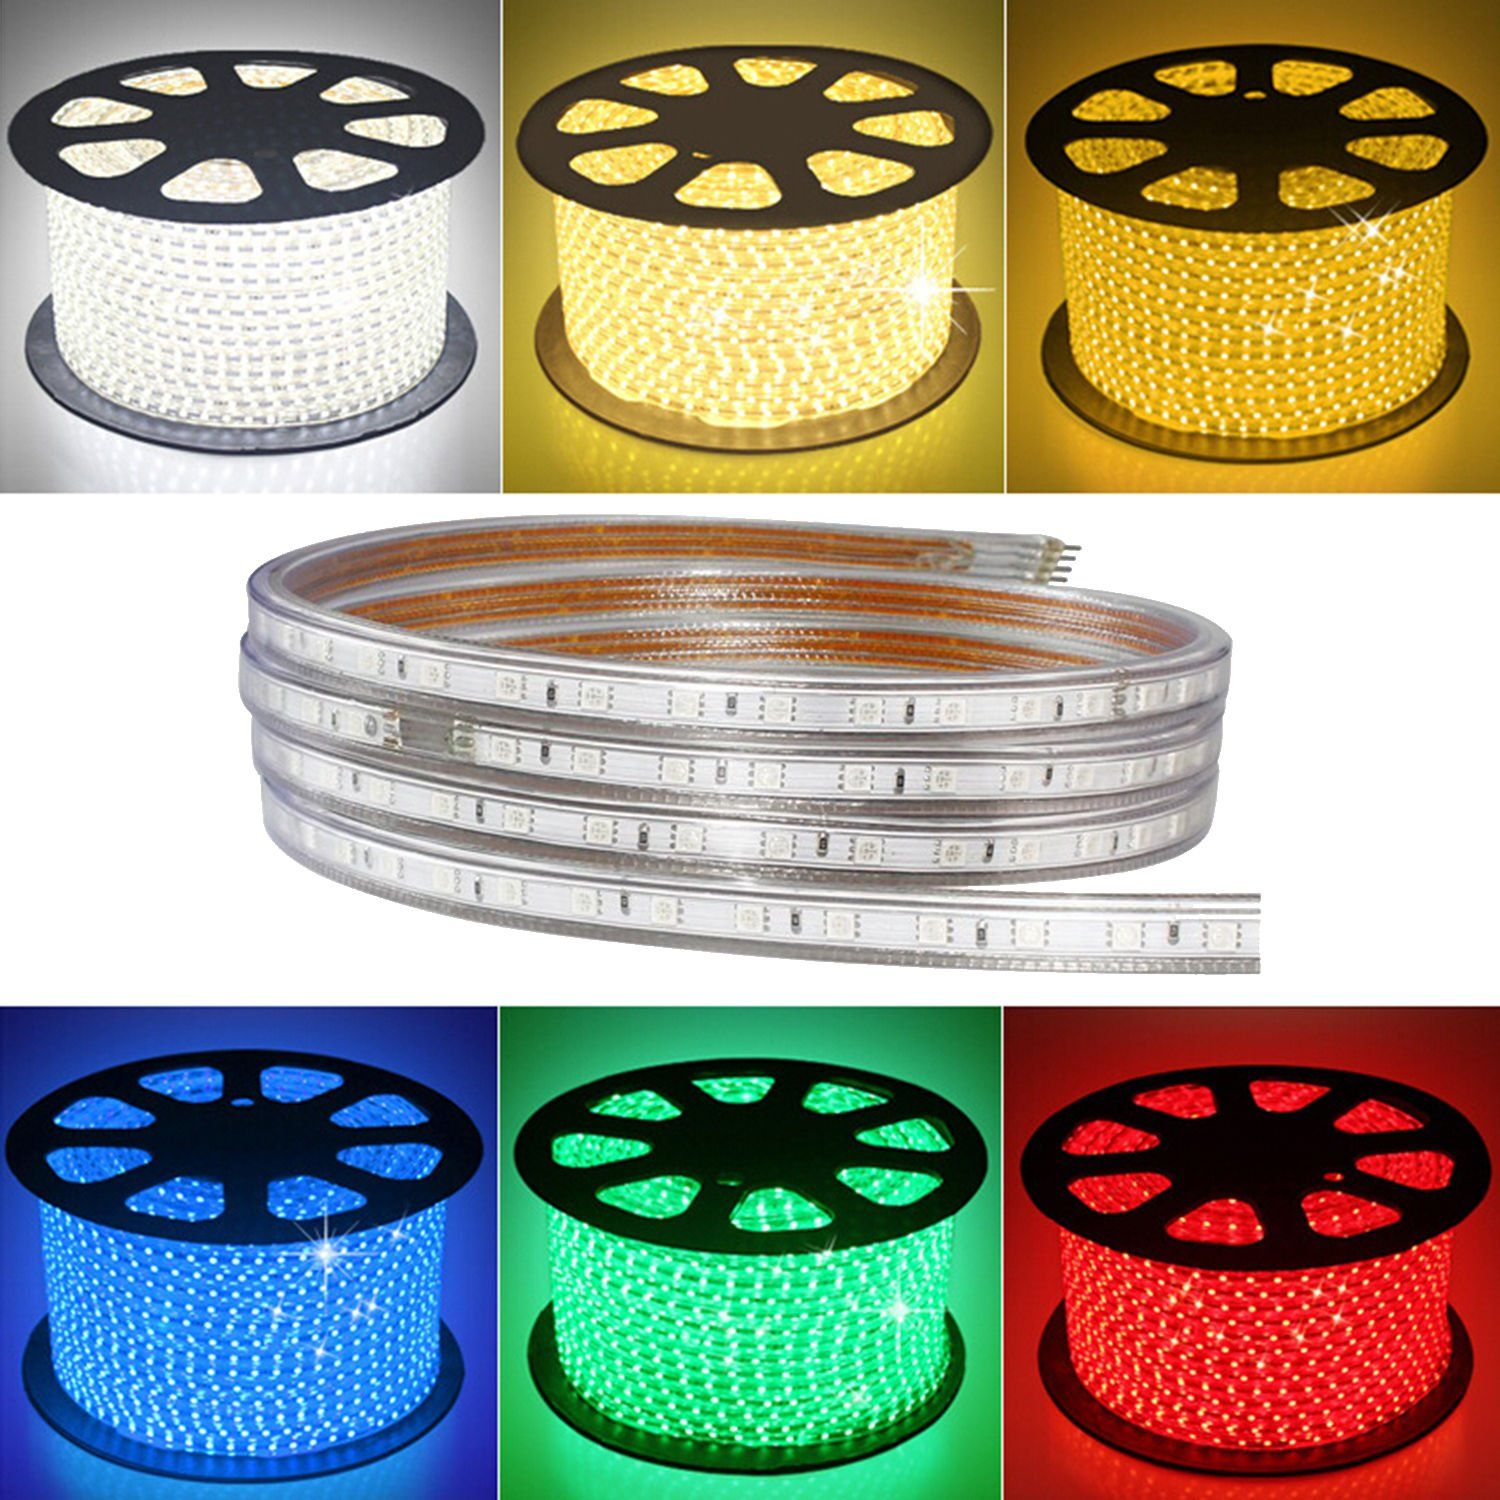 Iekovandtrade Ac 110120v Flexible Led Strip Lights 60 Leds M Dimmable Waterproof 5050 Smd Led Rope Light Remote Led Strip Lighting Led Rope Lights Led Strip